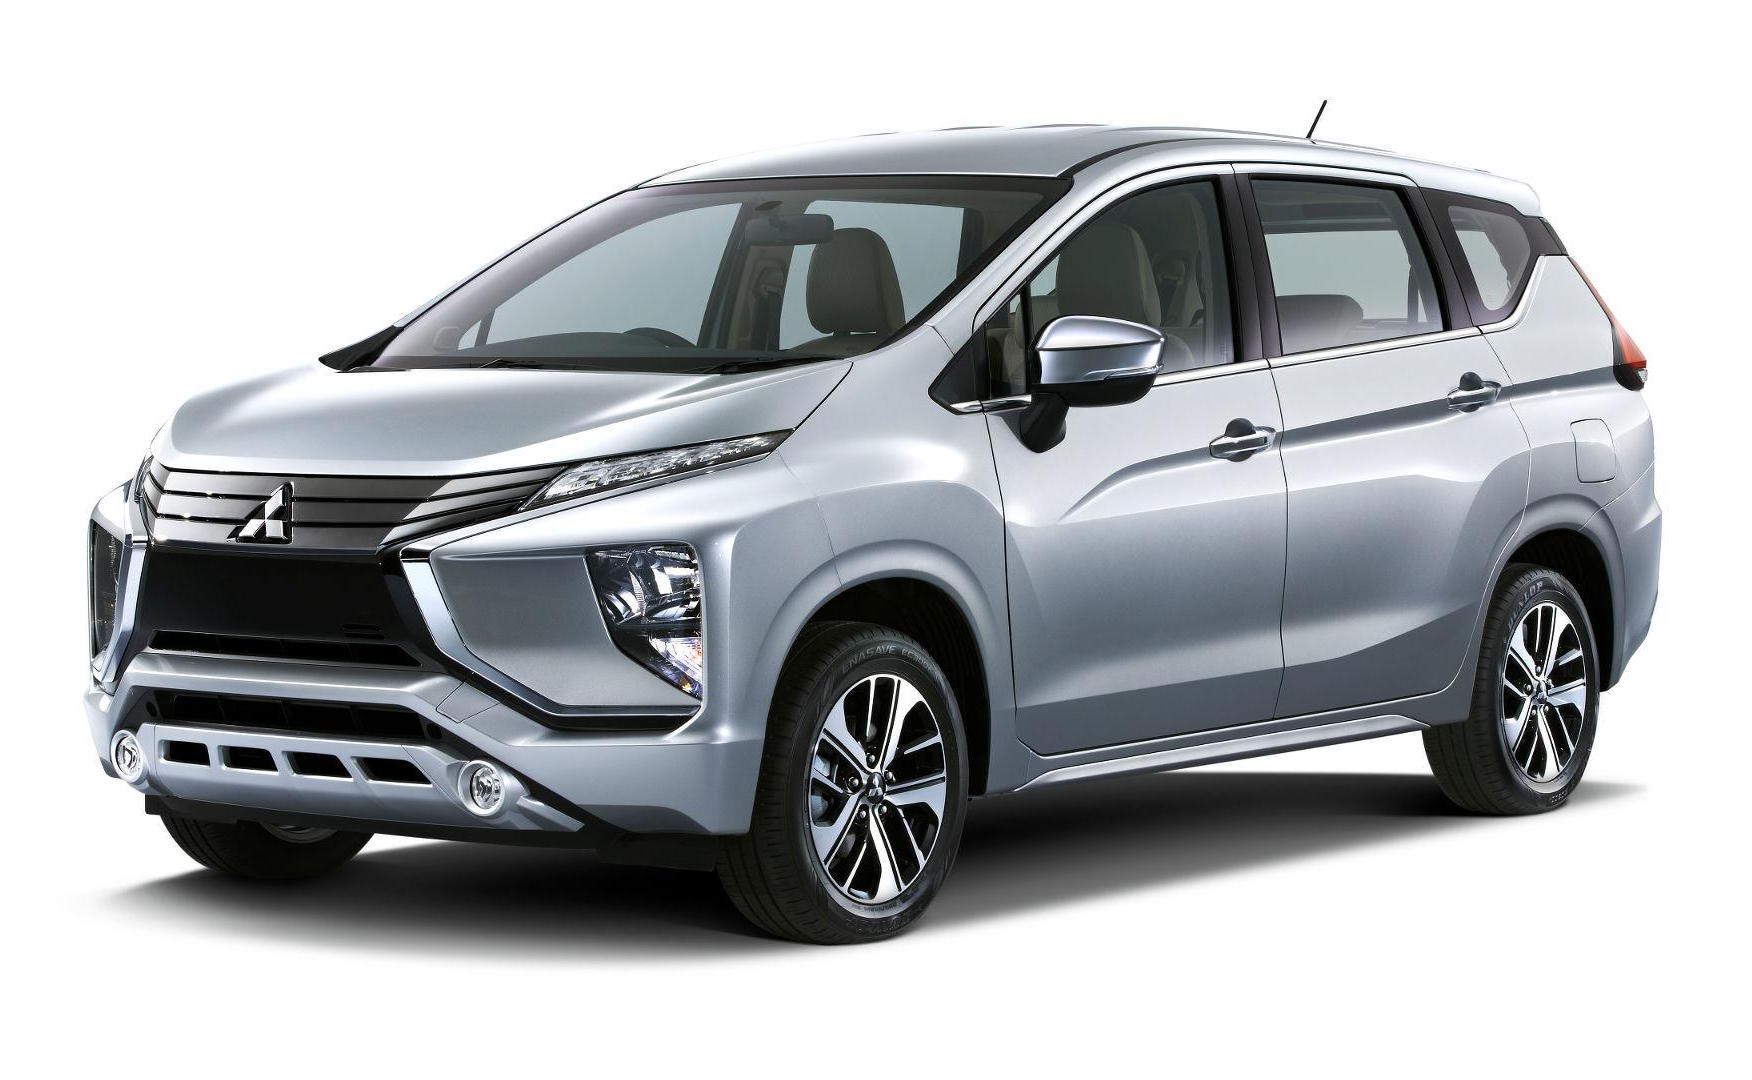 Mitsubishi MPV 'Expander' revealed, for Indonesian market | PerformanceDrive